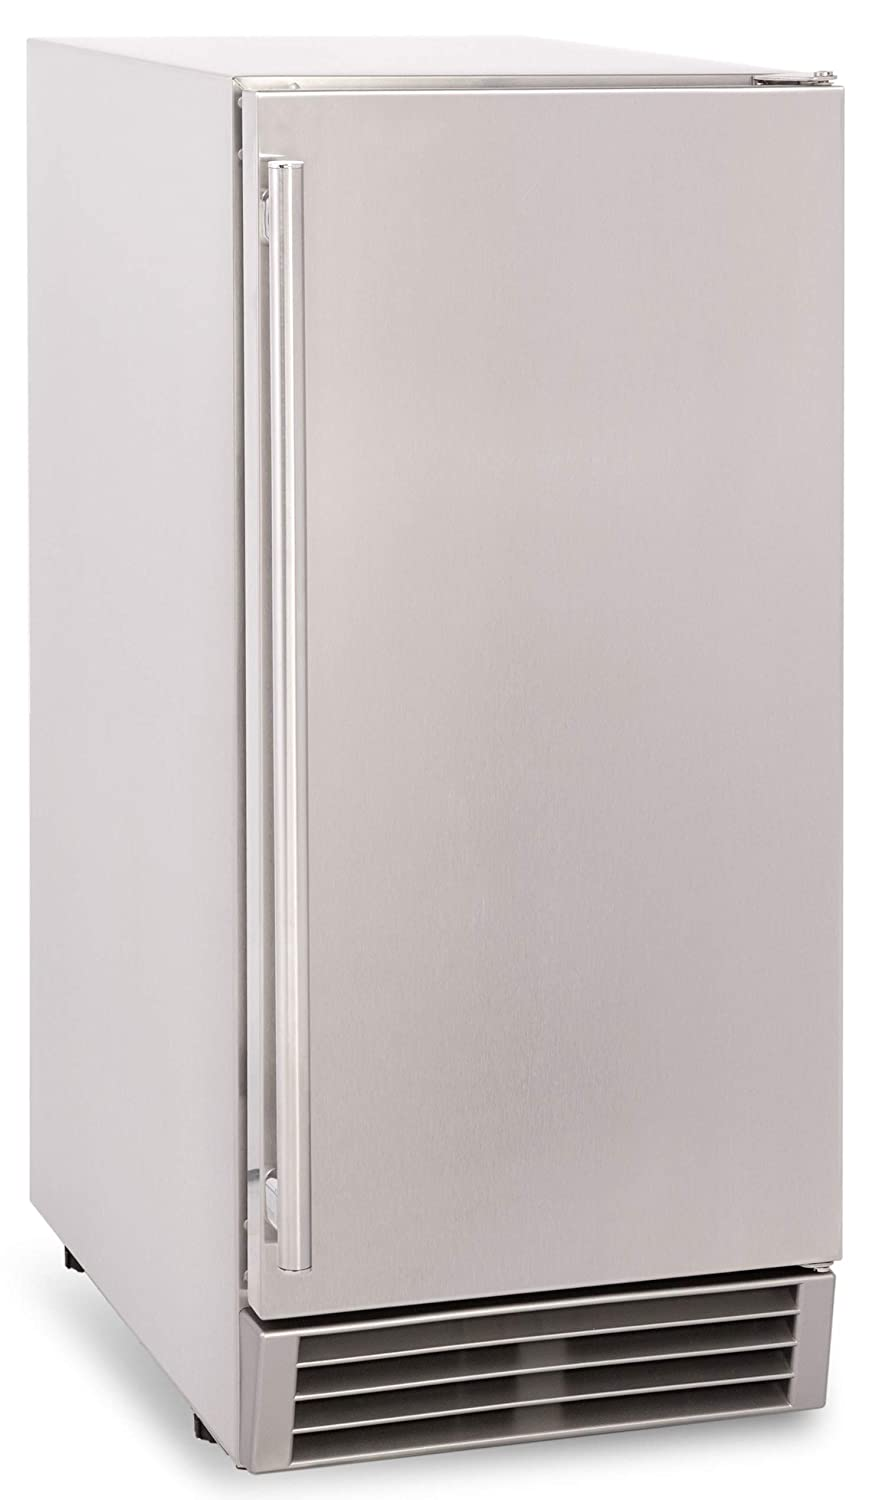 """Chef's Exclusive CE105 OUTDOOR Built-In Under Counter Clear Ice Maker Machine with Drain Pump and Internal LED Reversible Door 60 Pounds Per Day and 25 Pound Storage Capacity, 14.6"""" Wide, Silver"""